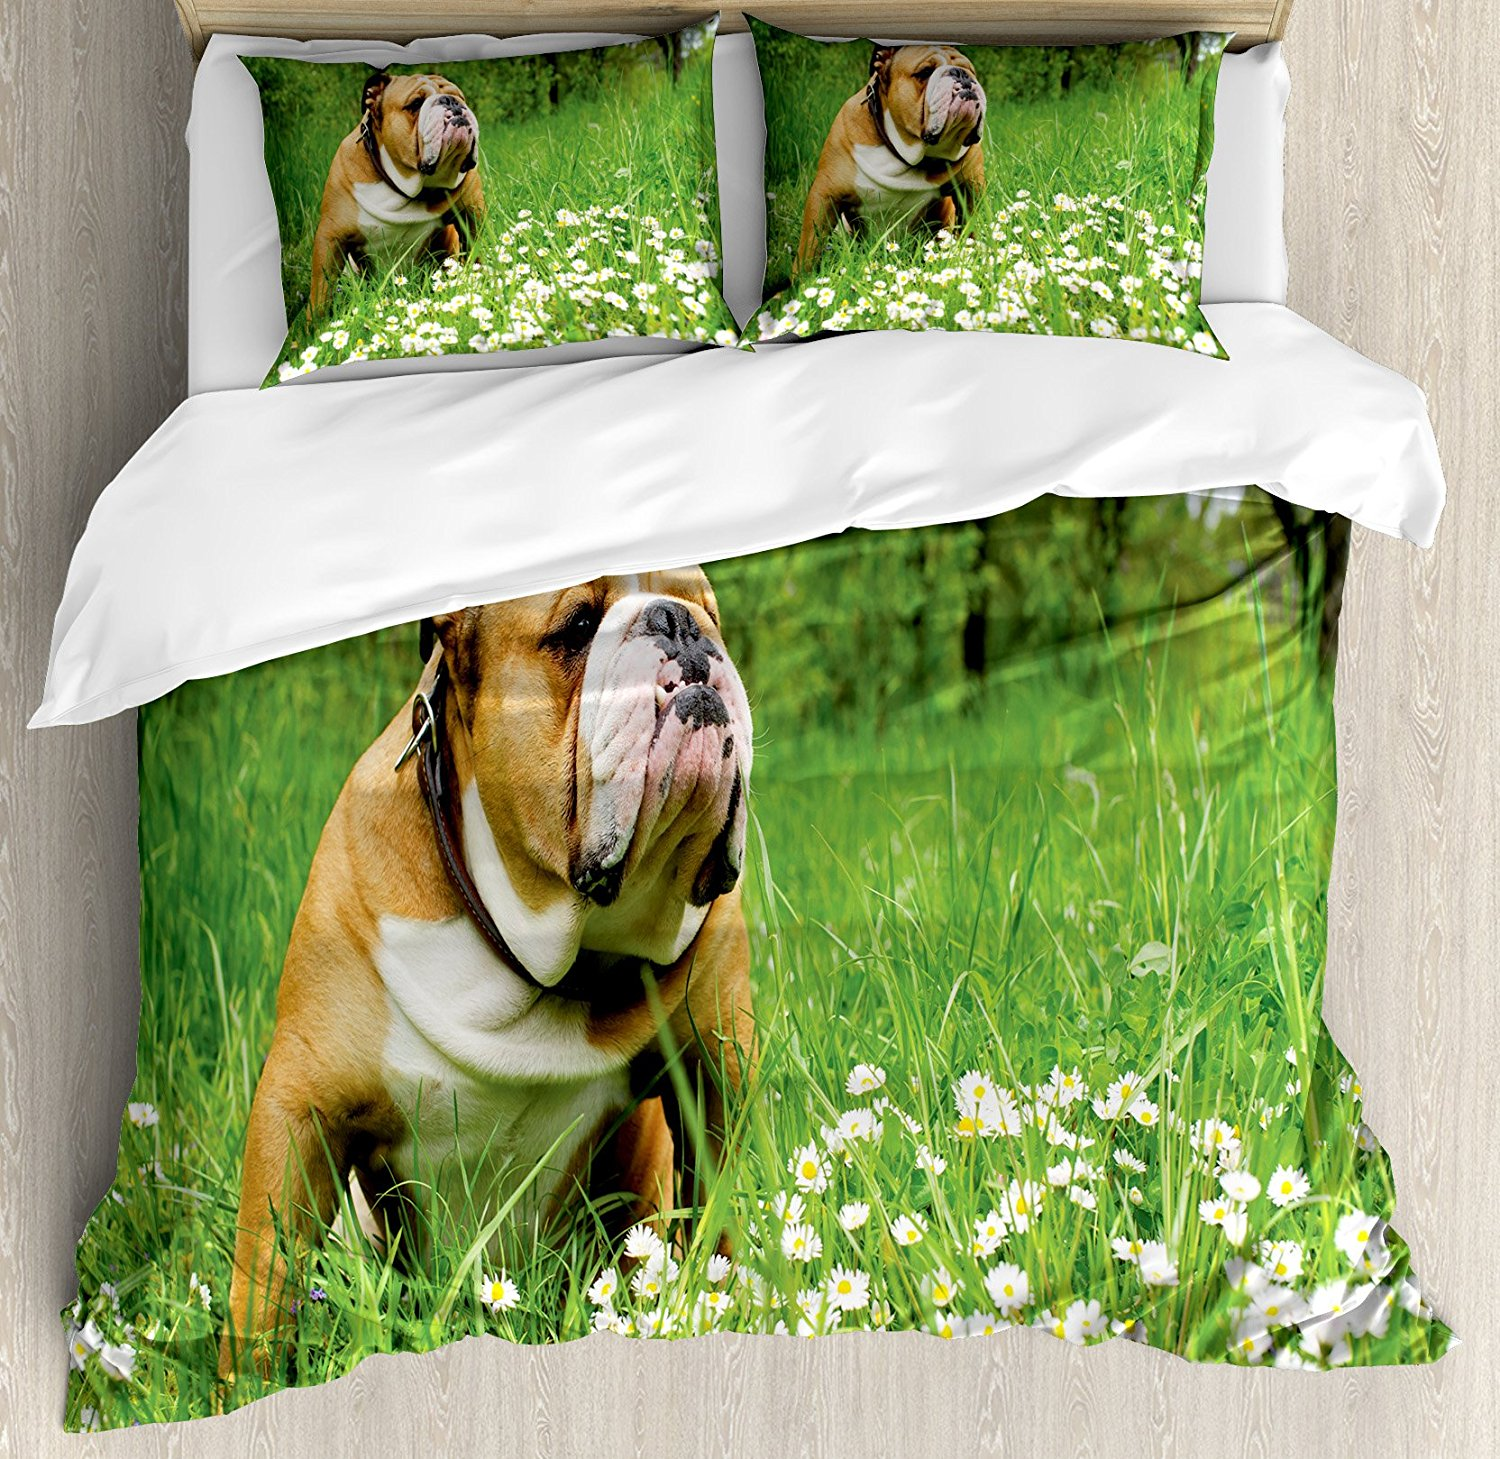 English Bulldog Duvet Cover Set Park in Spring with Blooming Daisies and Trees and Bulldog 4